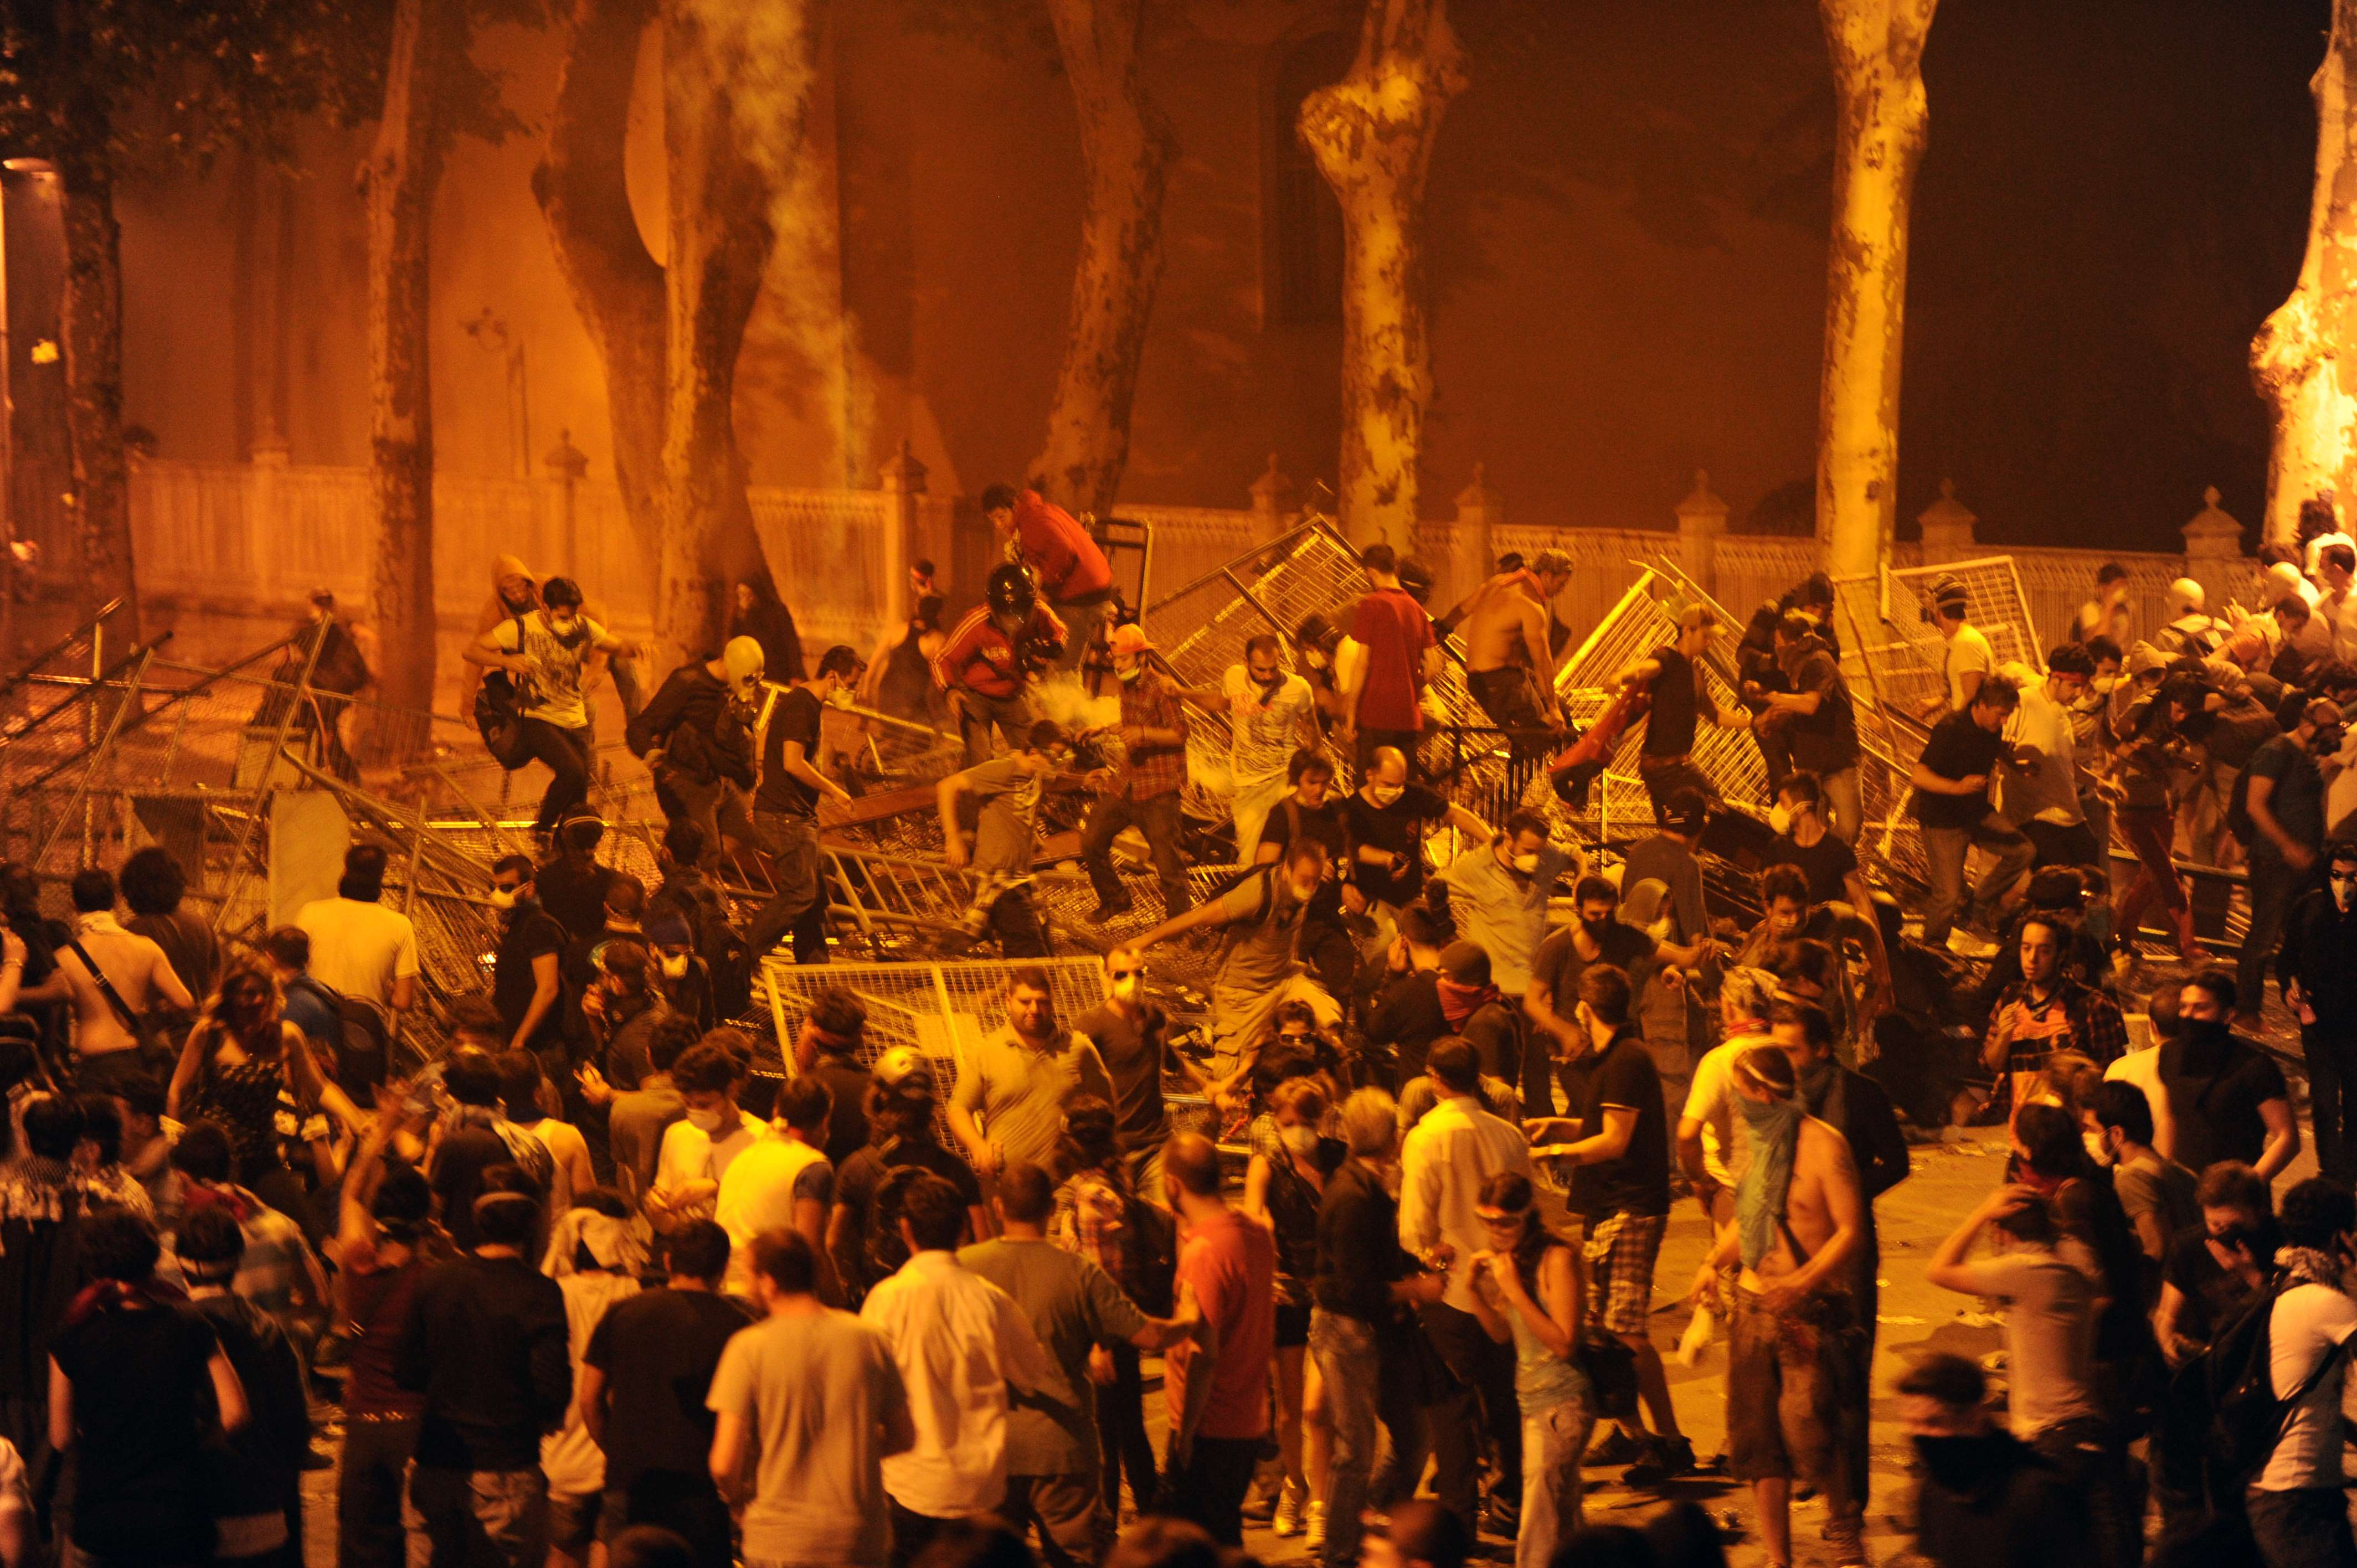 Protestors clash with riot police between Taksim and Besiktas in Istanbul, on June 1, 2013, during a demonstration against the demolition of the park. (AFP)